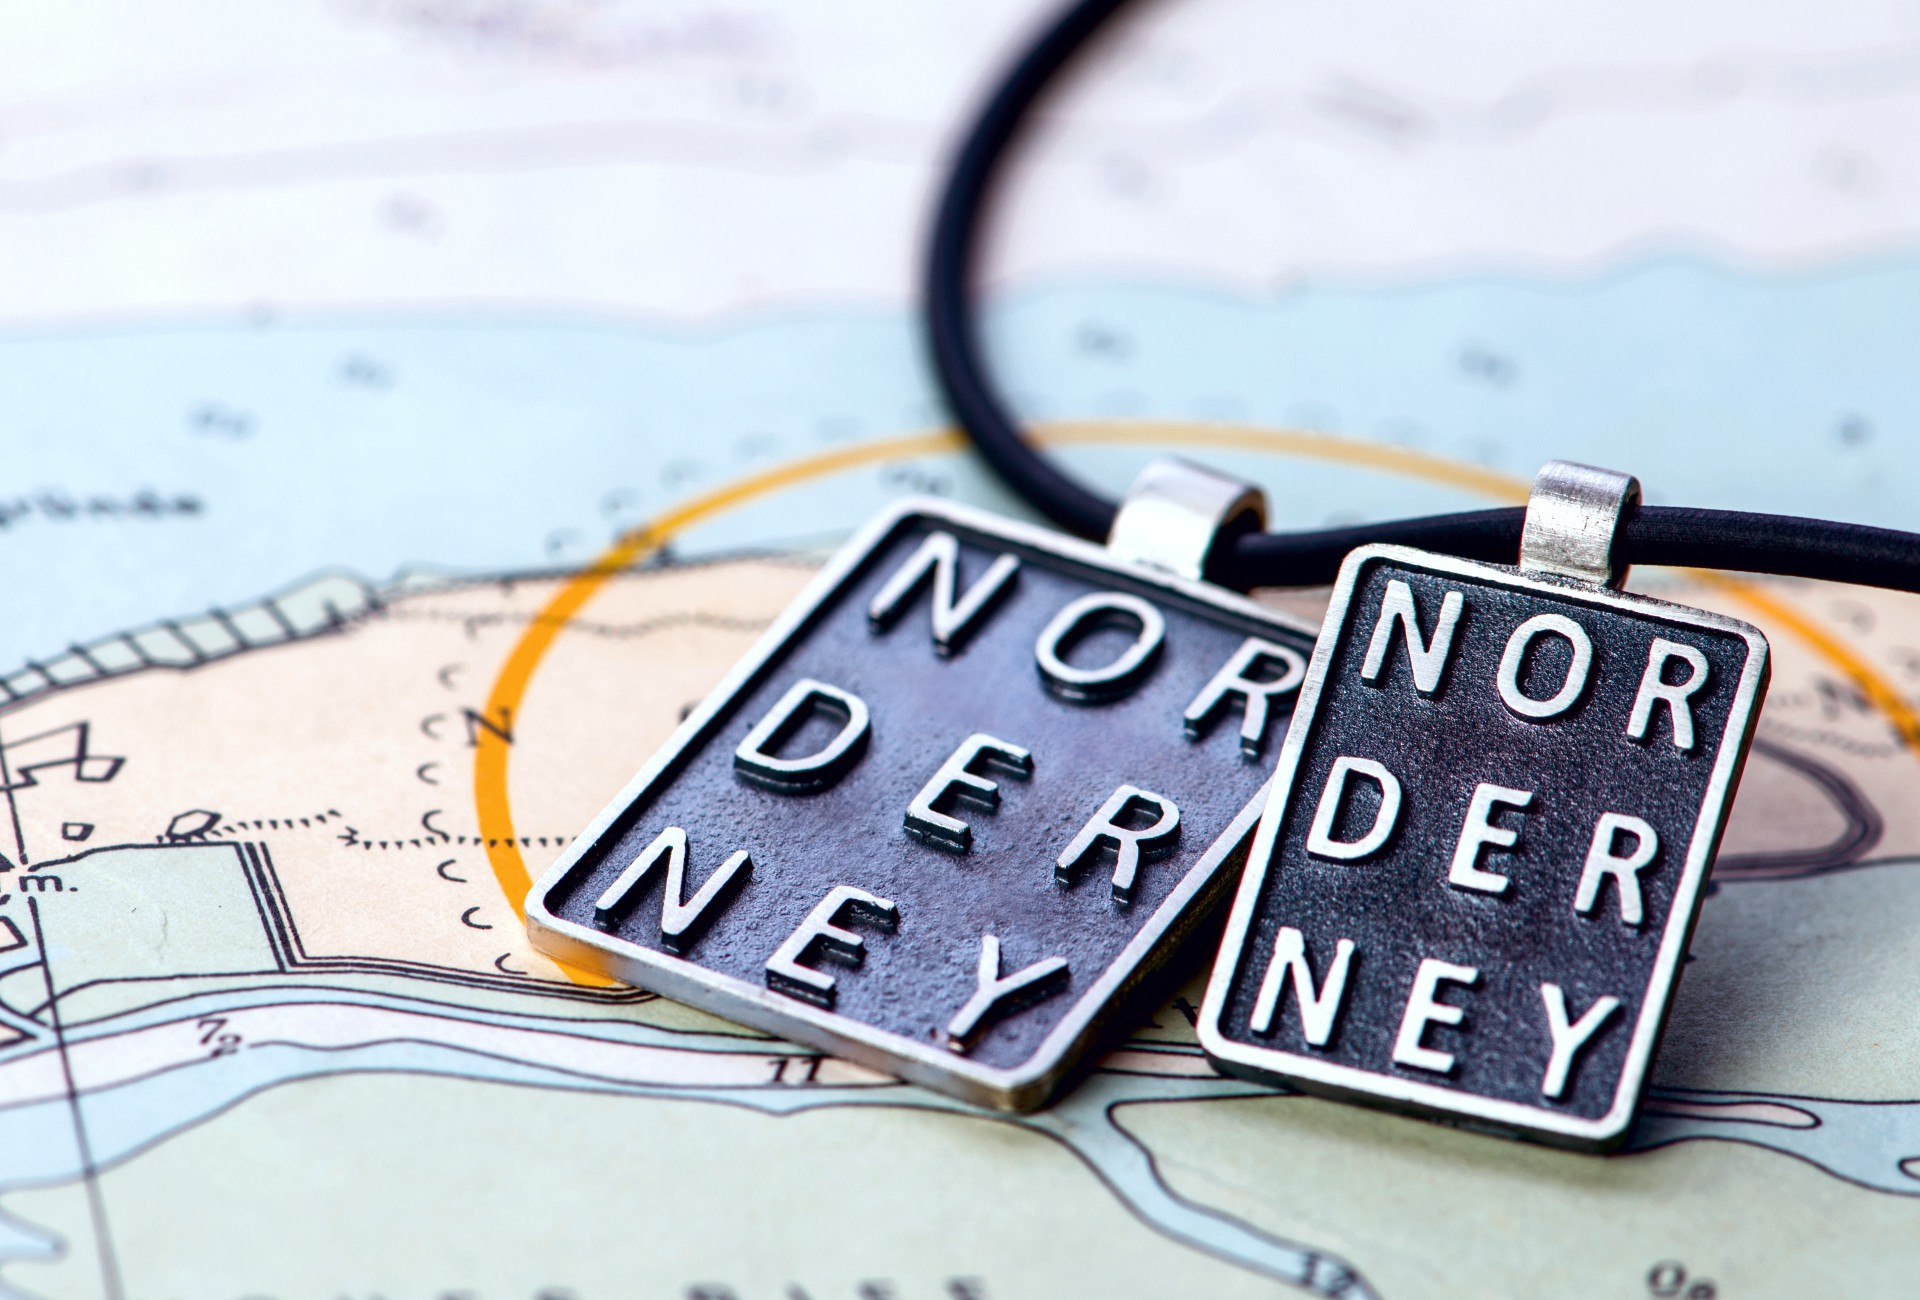 Norderney Dogtags